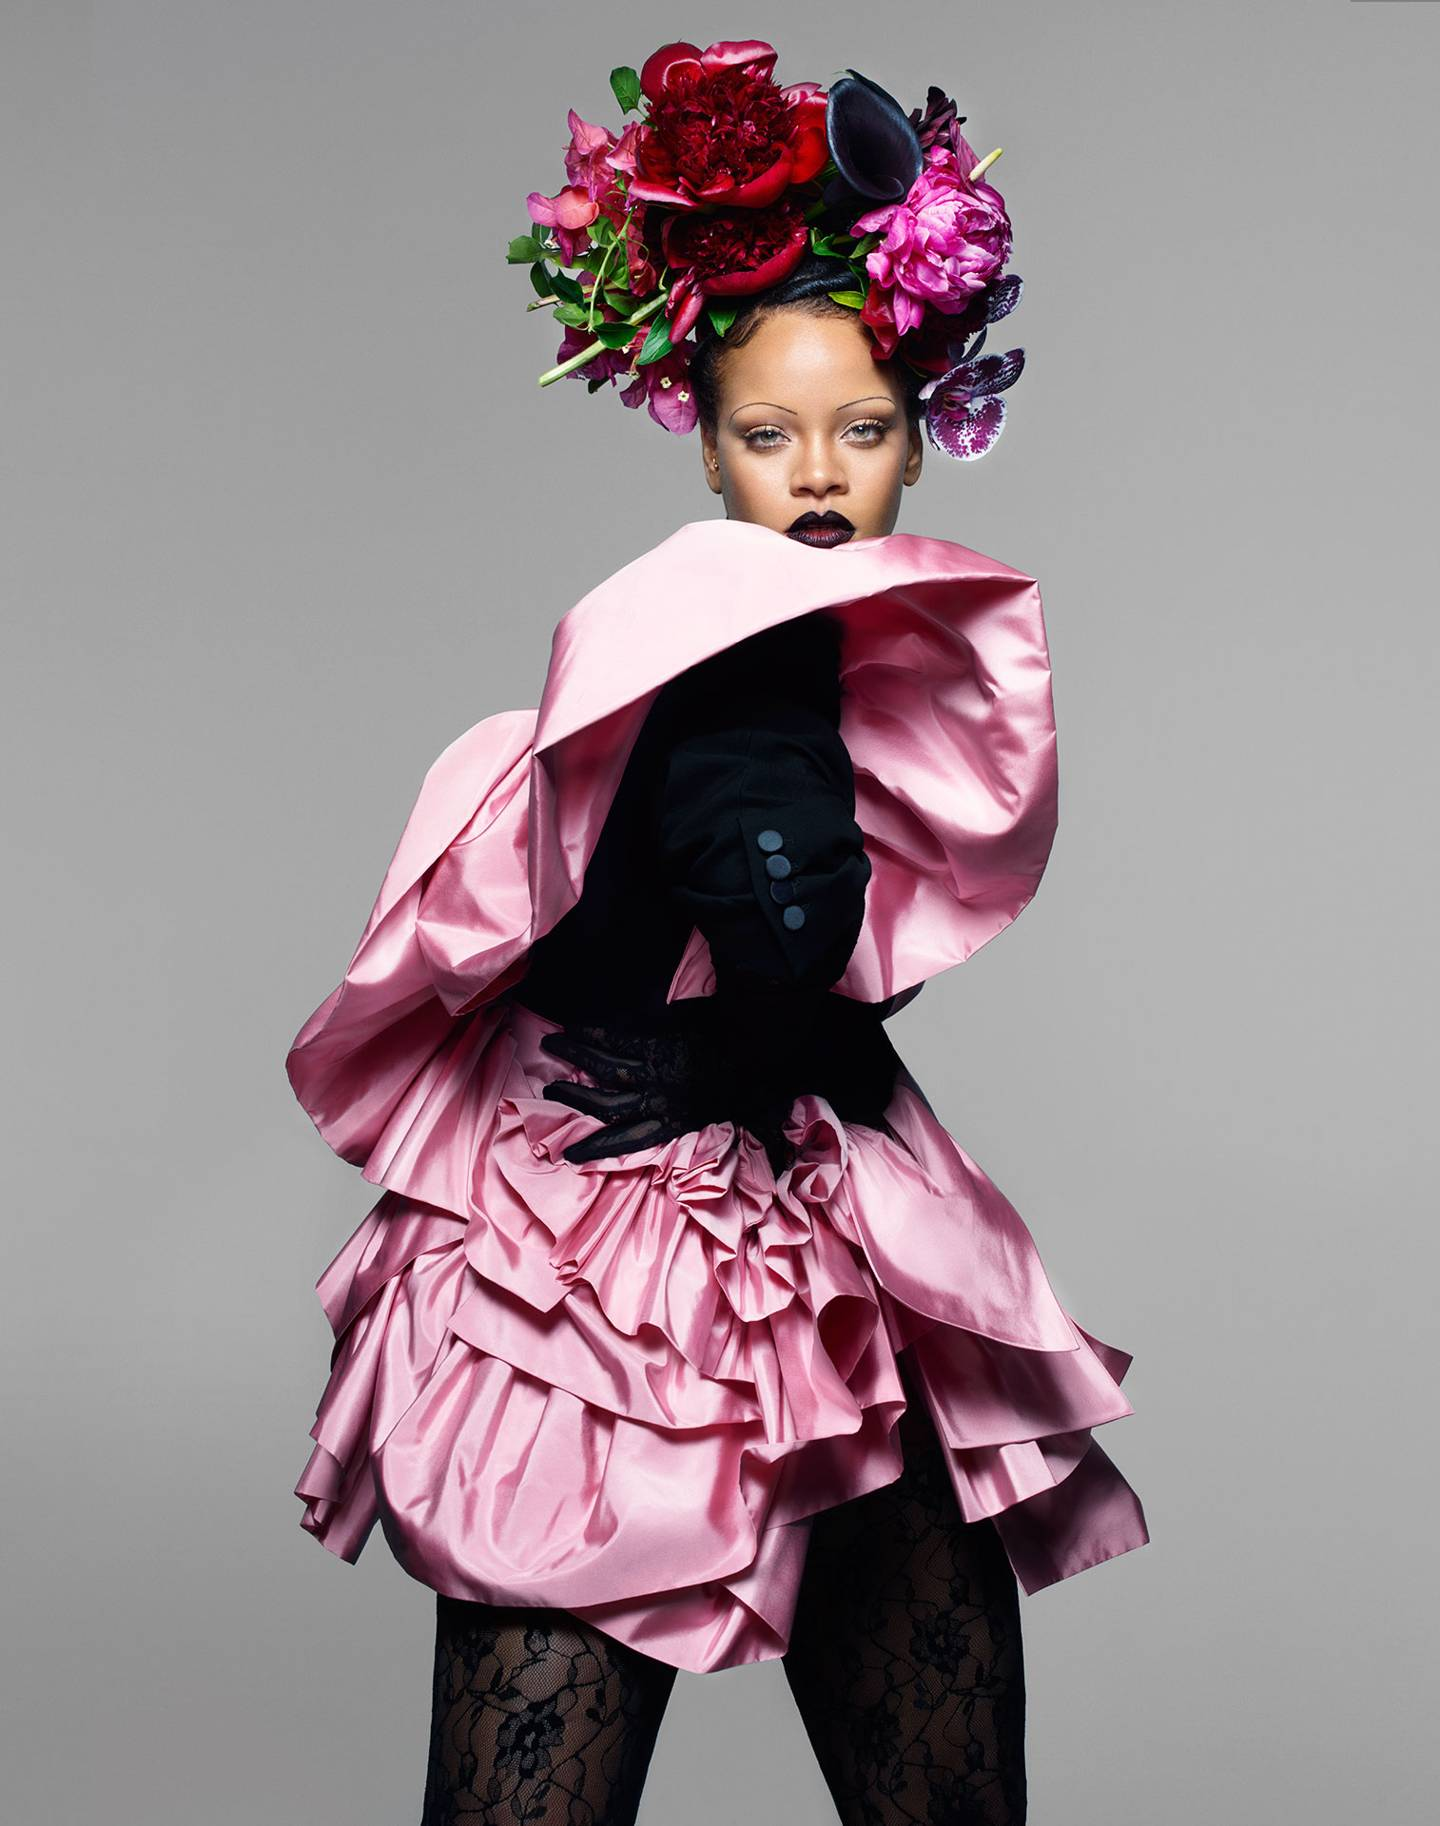 Rihanna For Vogue UK X Nick Knight